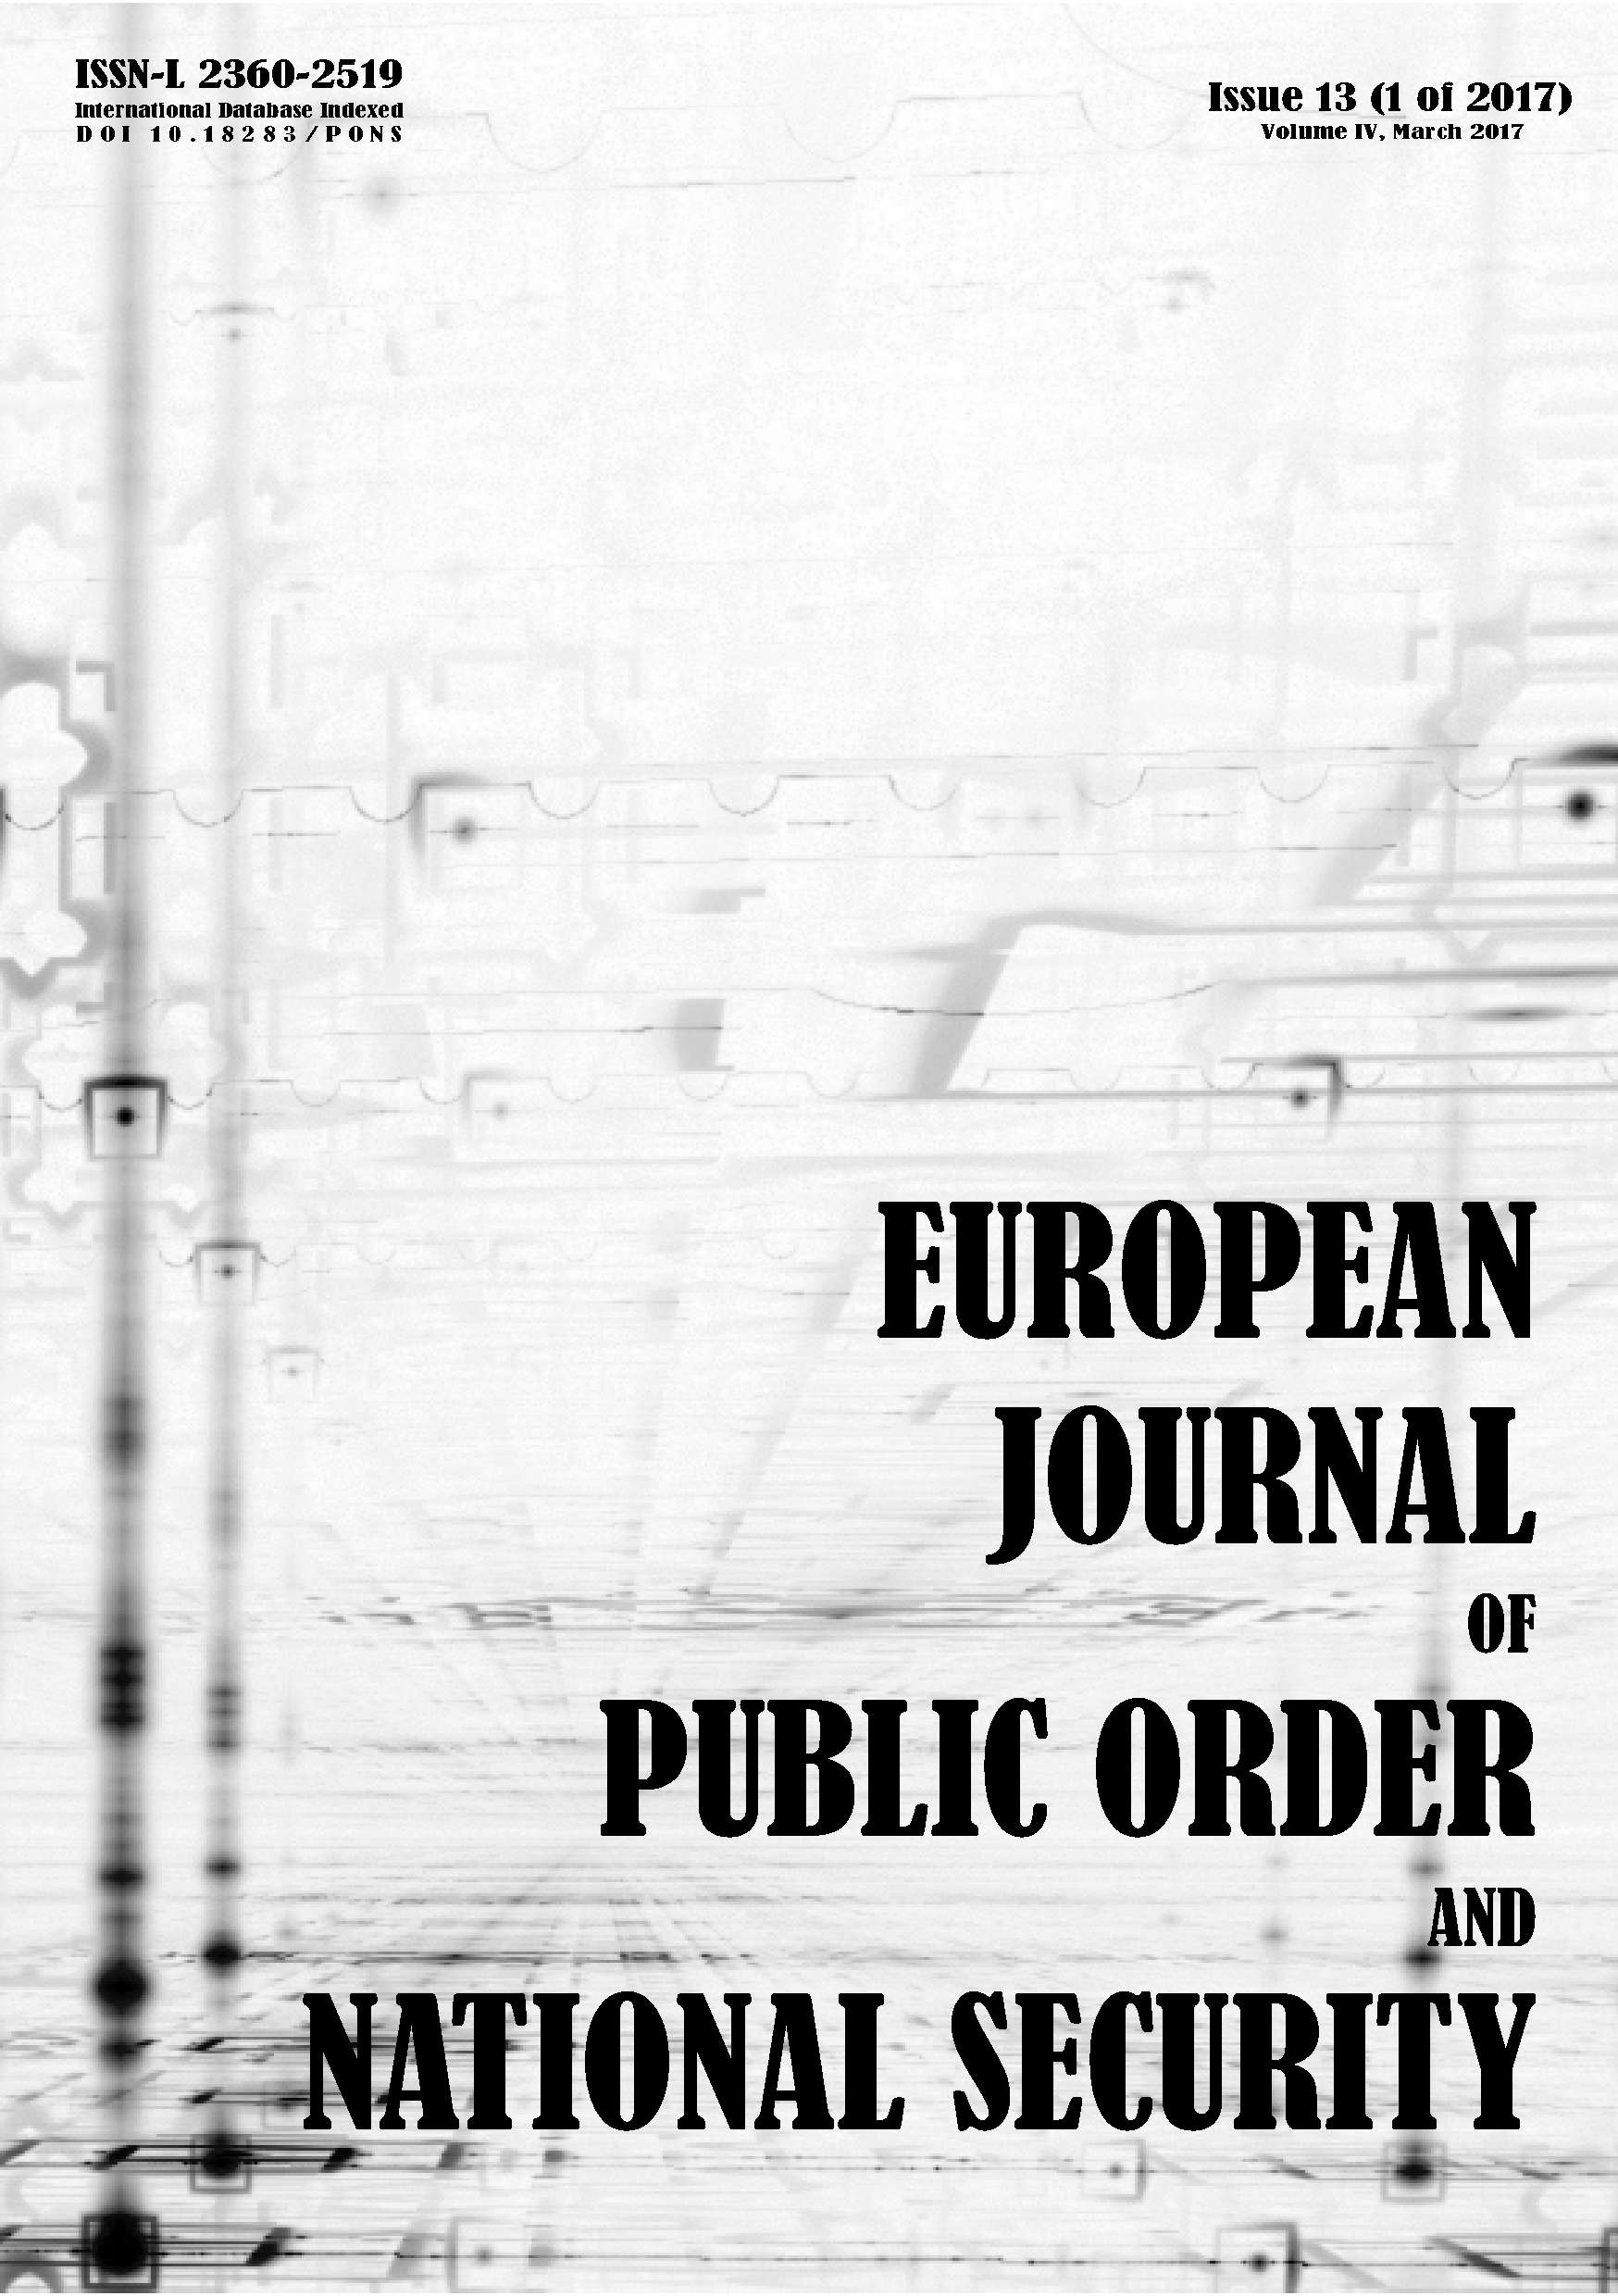 Ceeol Journal Detail Database Security Articles List